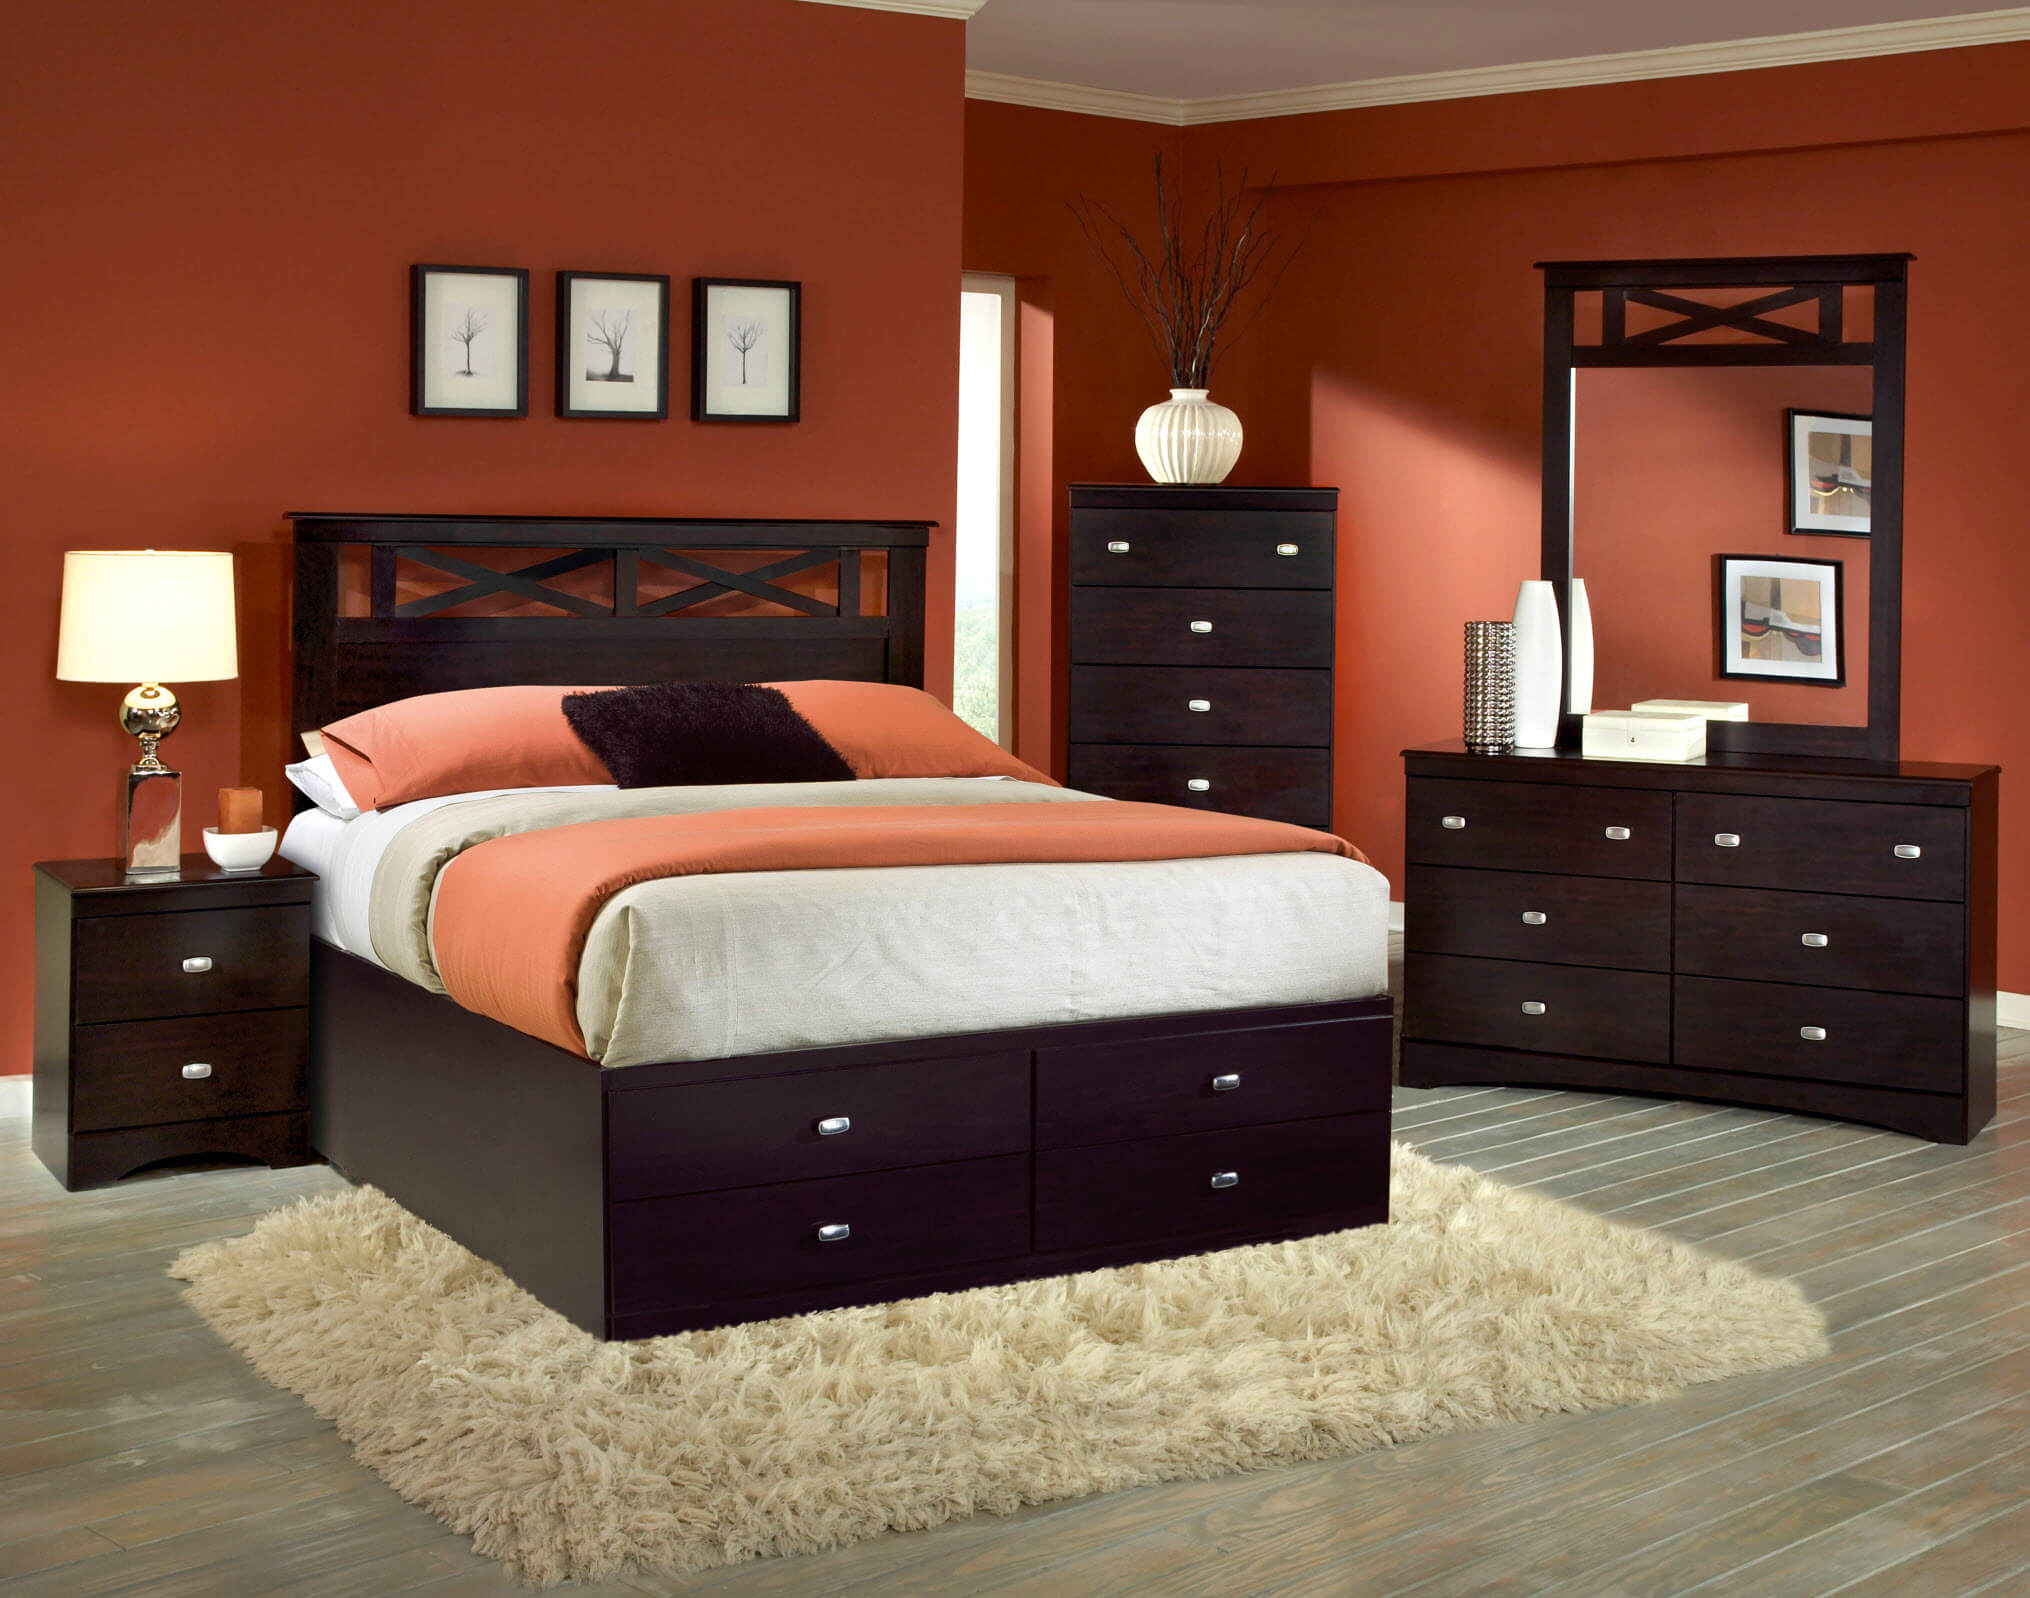 230 Kith Tyler 5 pc Set with Queen Storage Bed